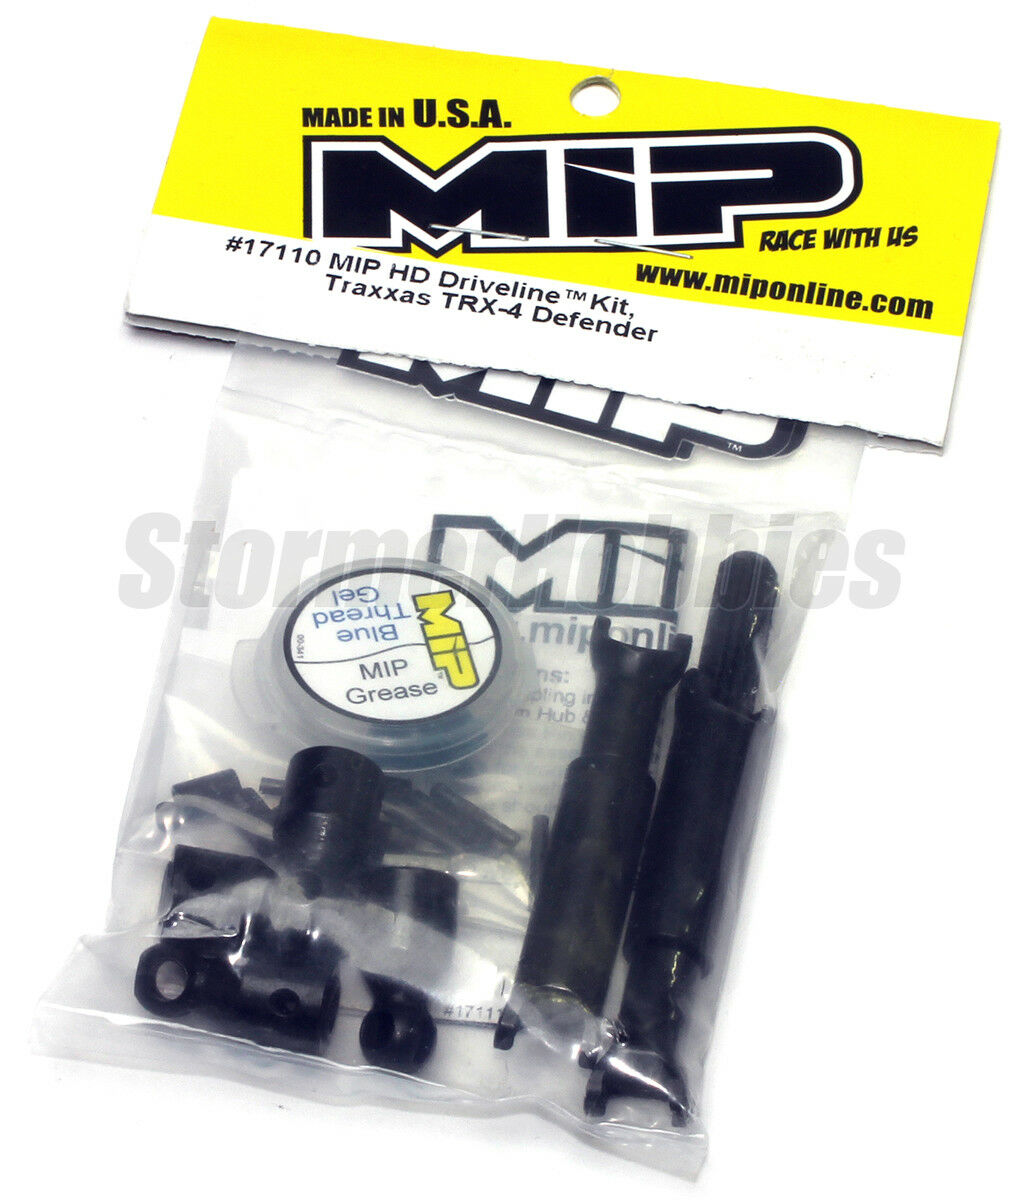 NEW MIP Traxxas TRX-4 HD Driveline Kit MIP17110 Fits Landrover Defender Bronco